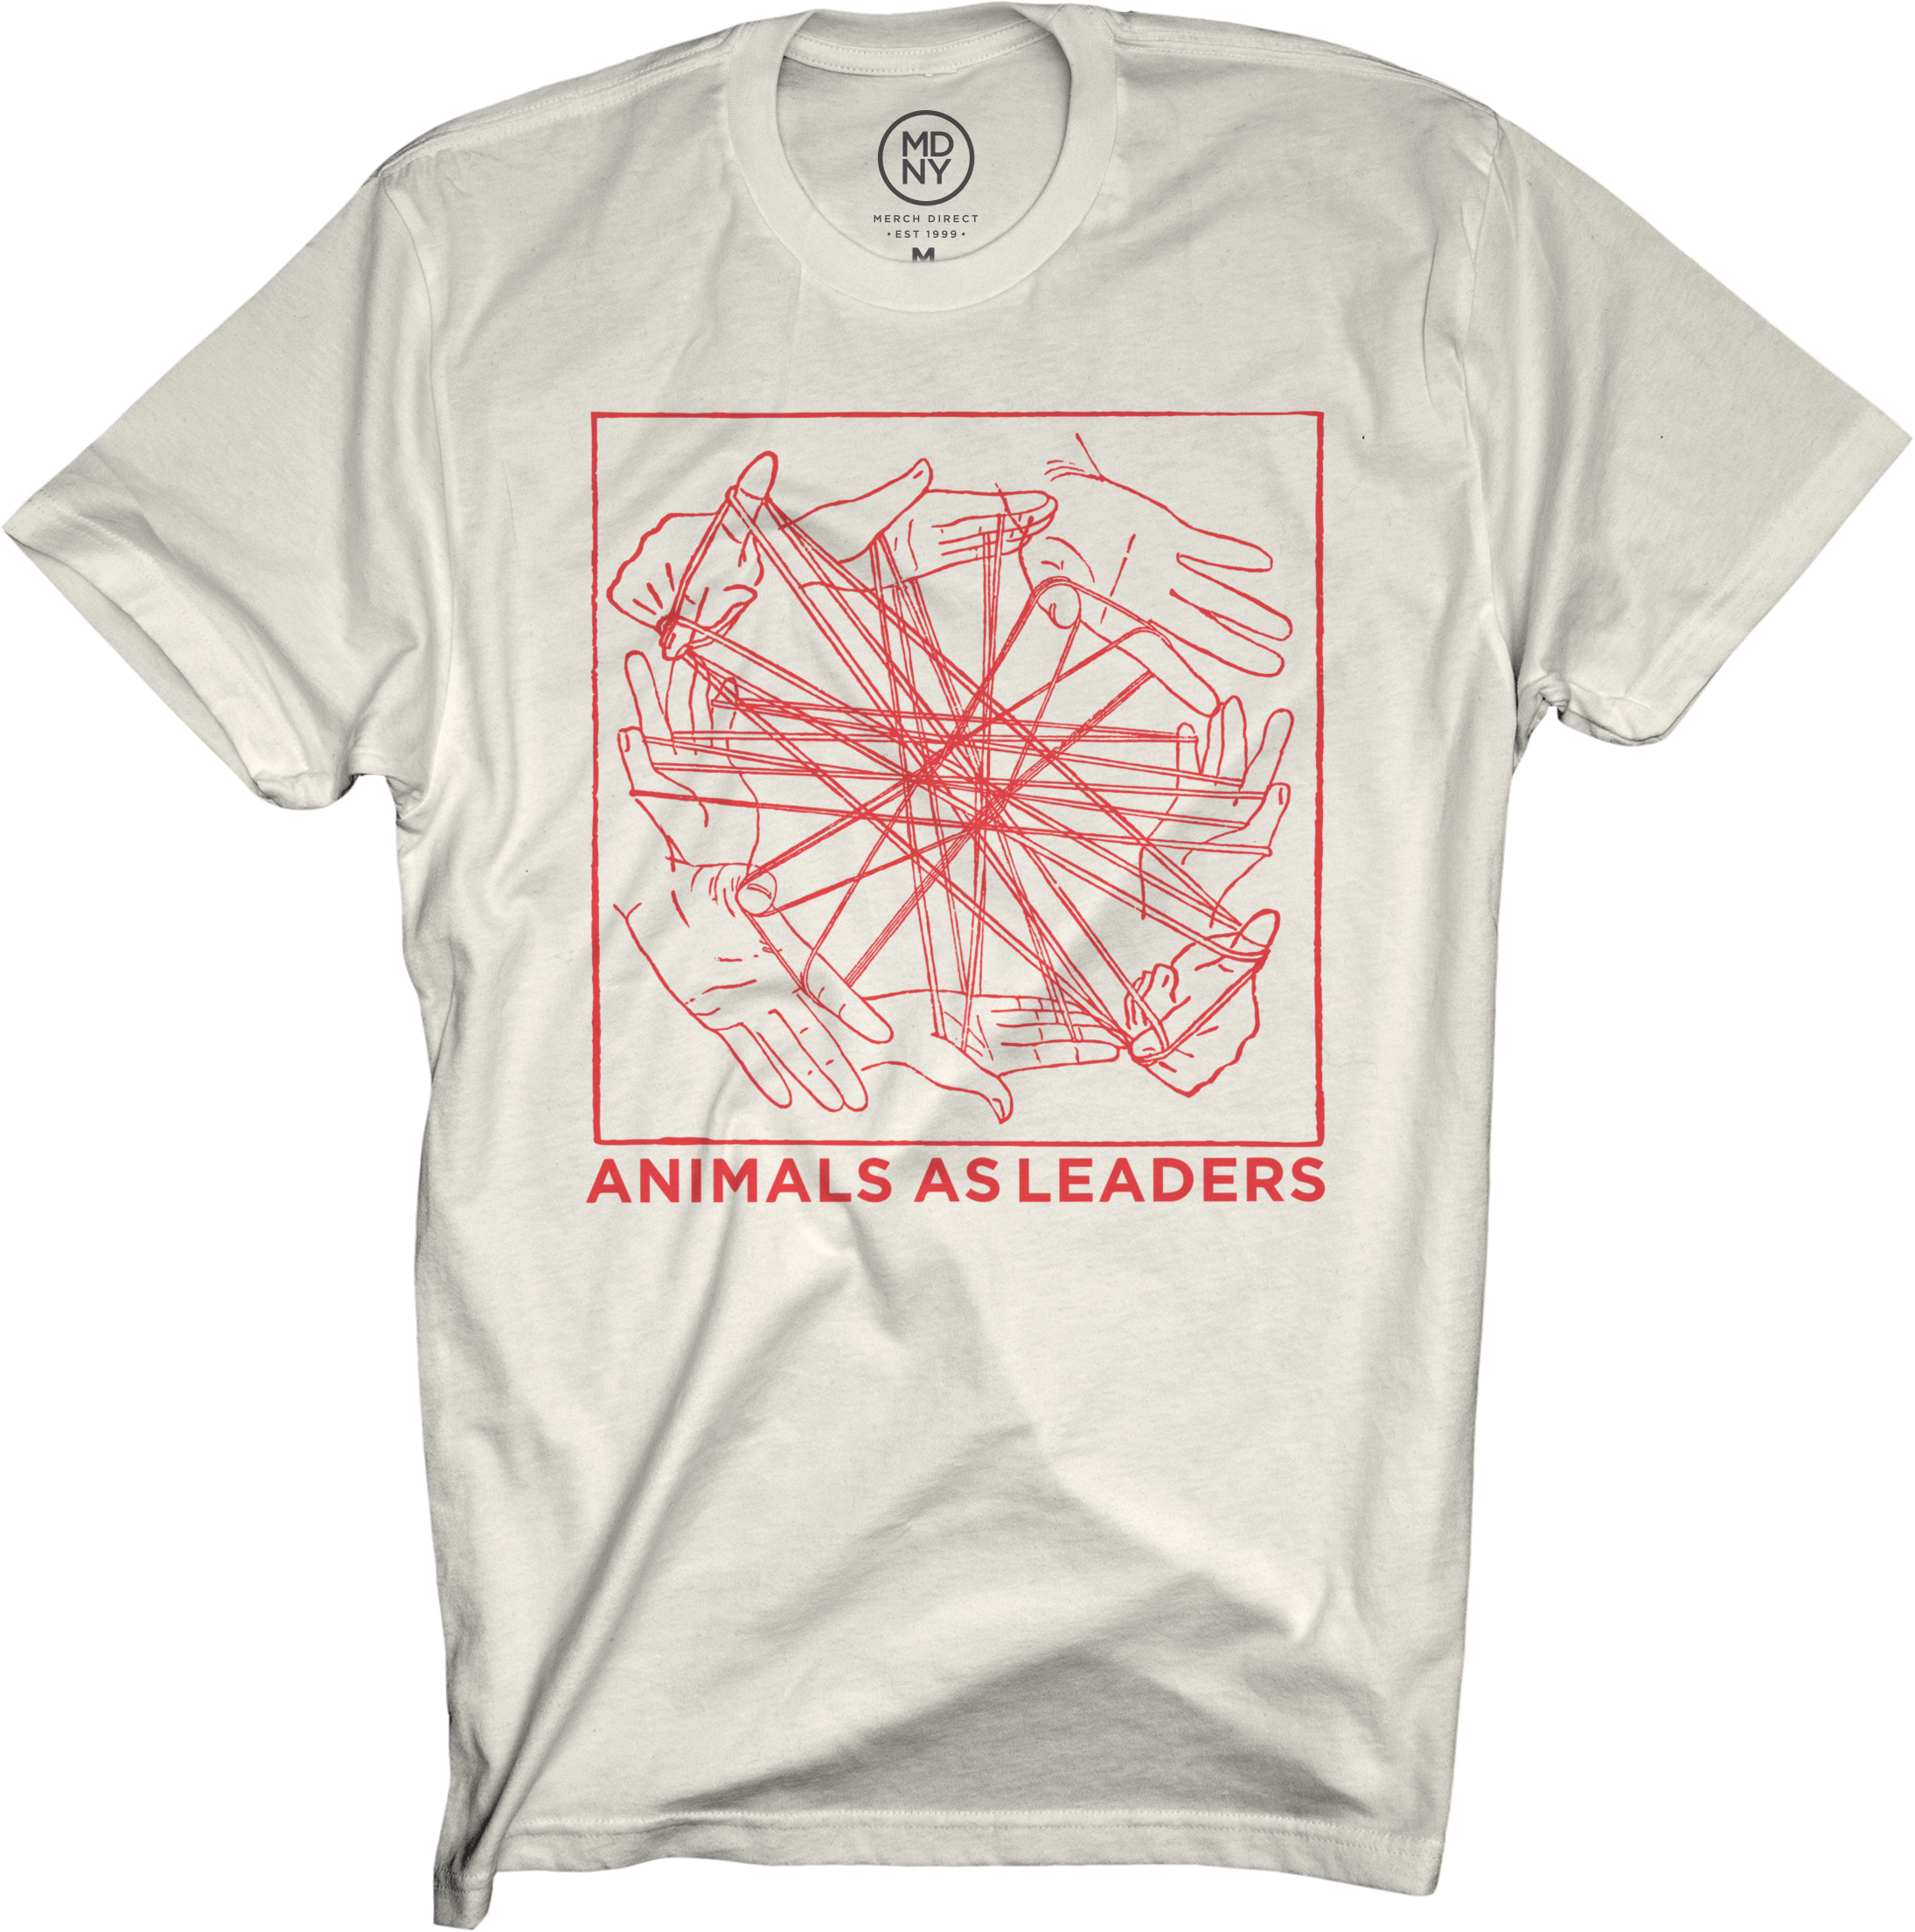 Animals As Leaders Tour Merch